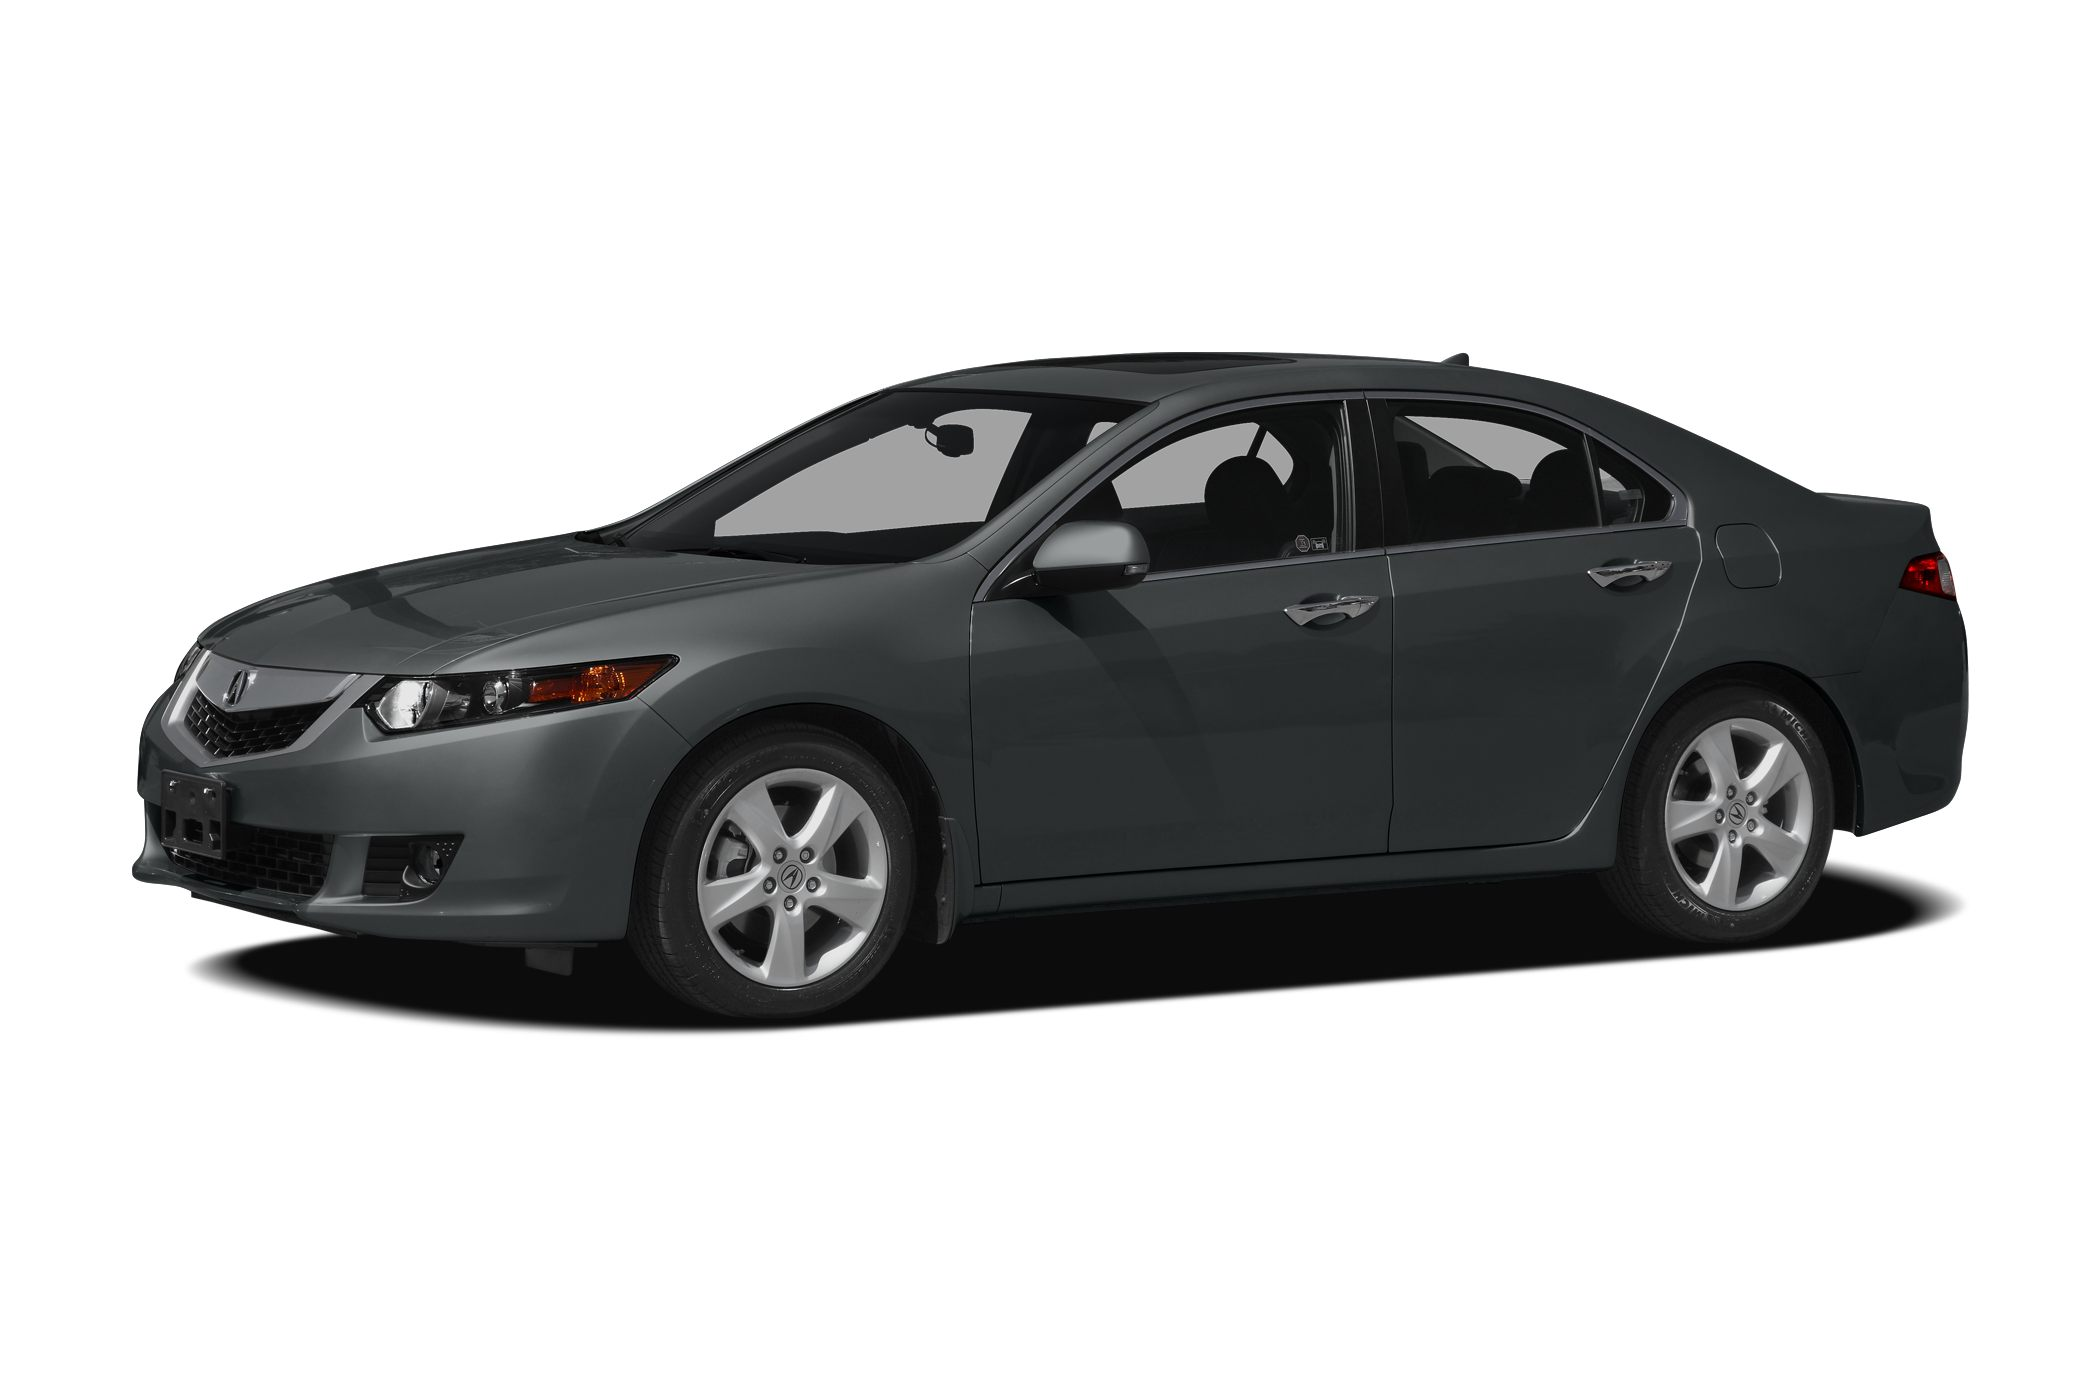 2009 Acura TSX Sedan for sale in Yakima for $16,666 with 121,259 miles